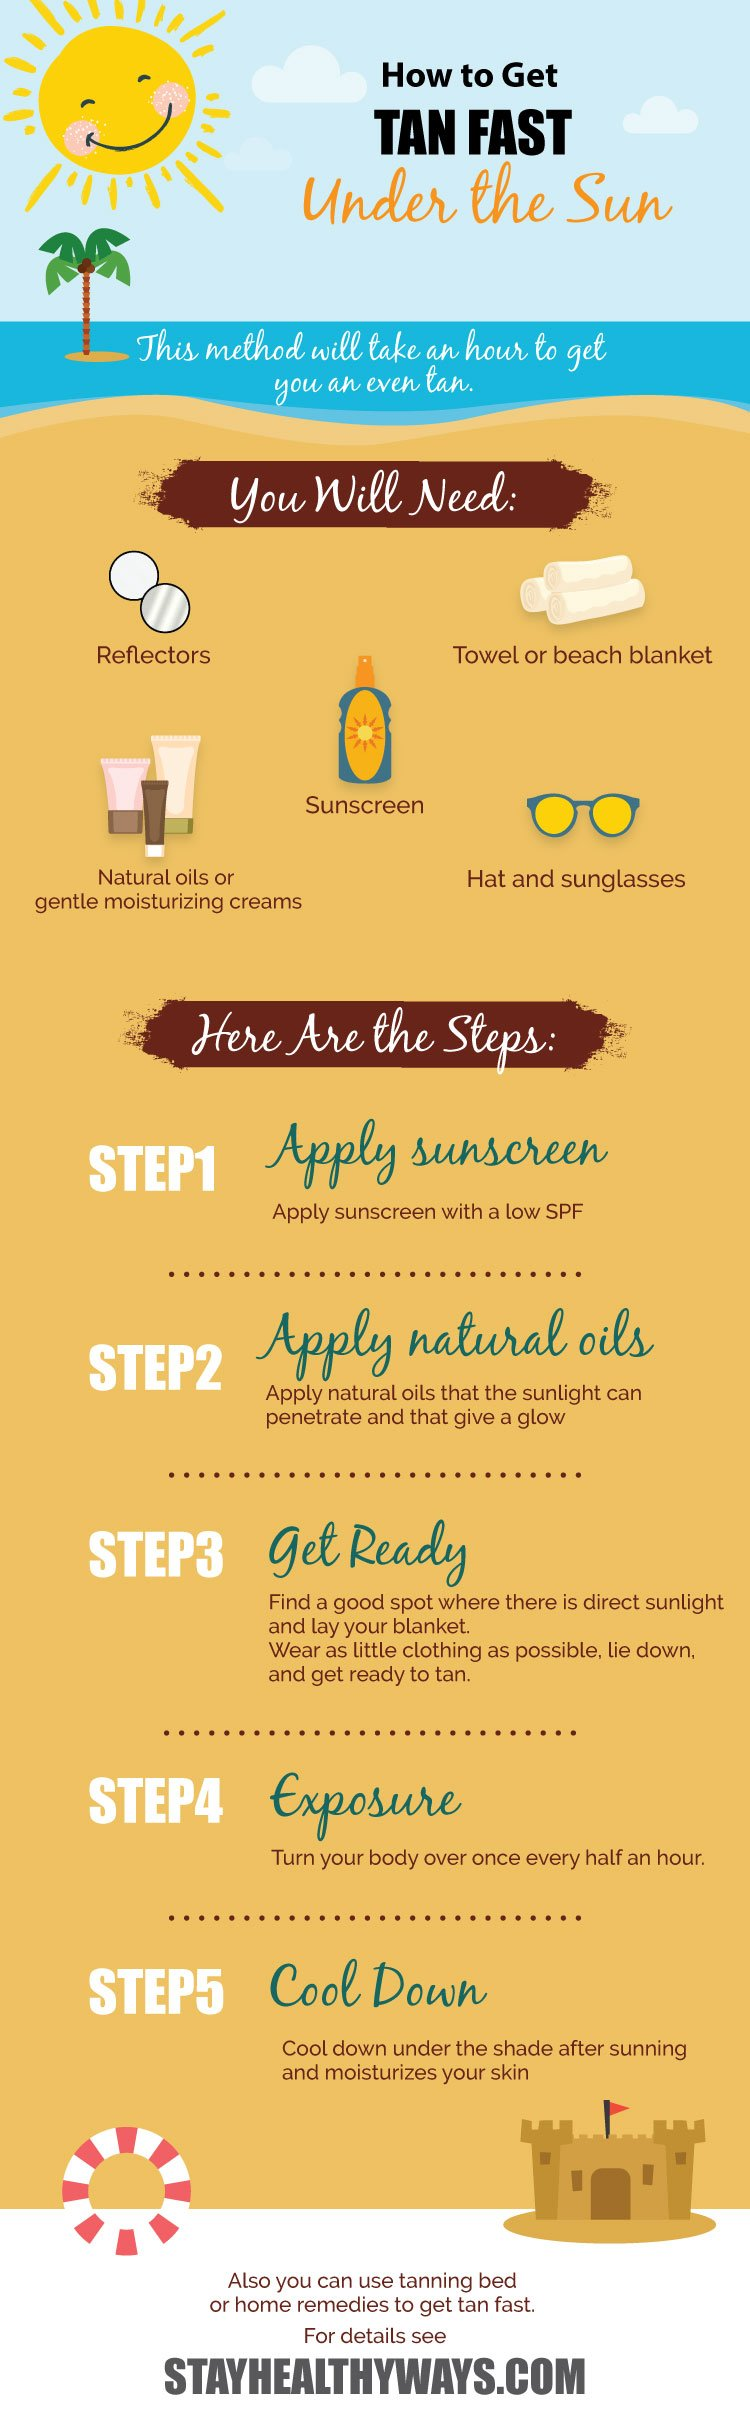 how to get tan fast infographic